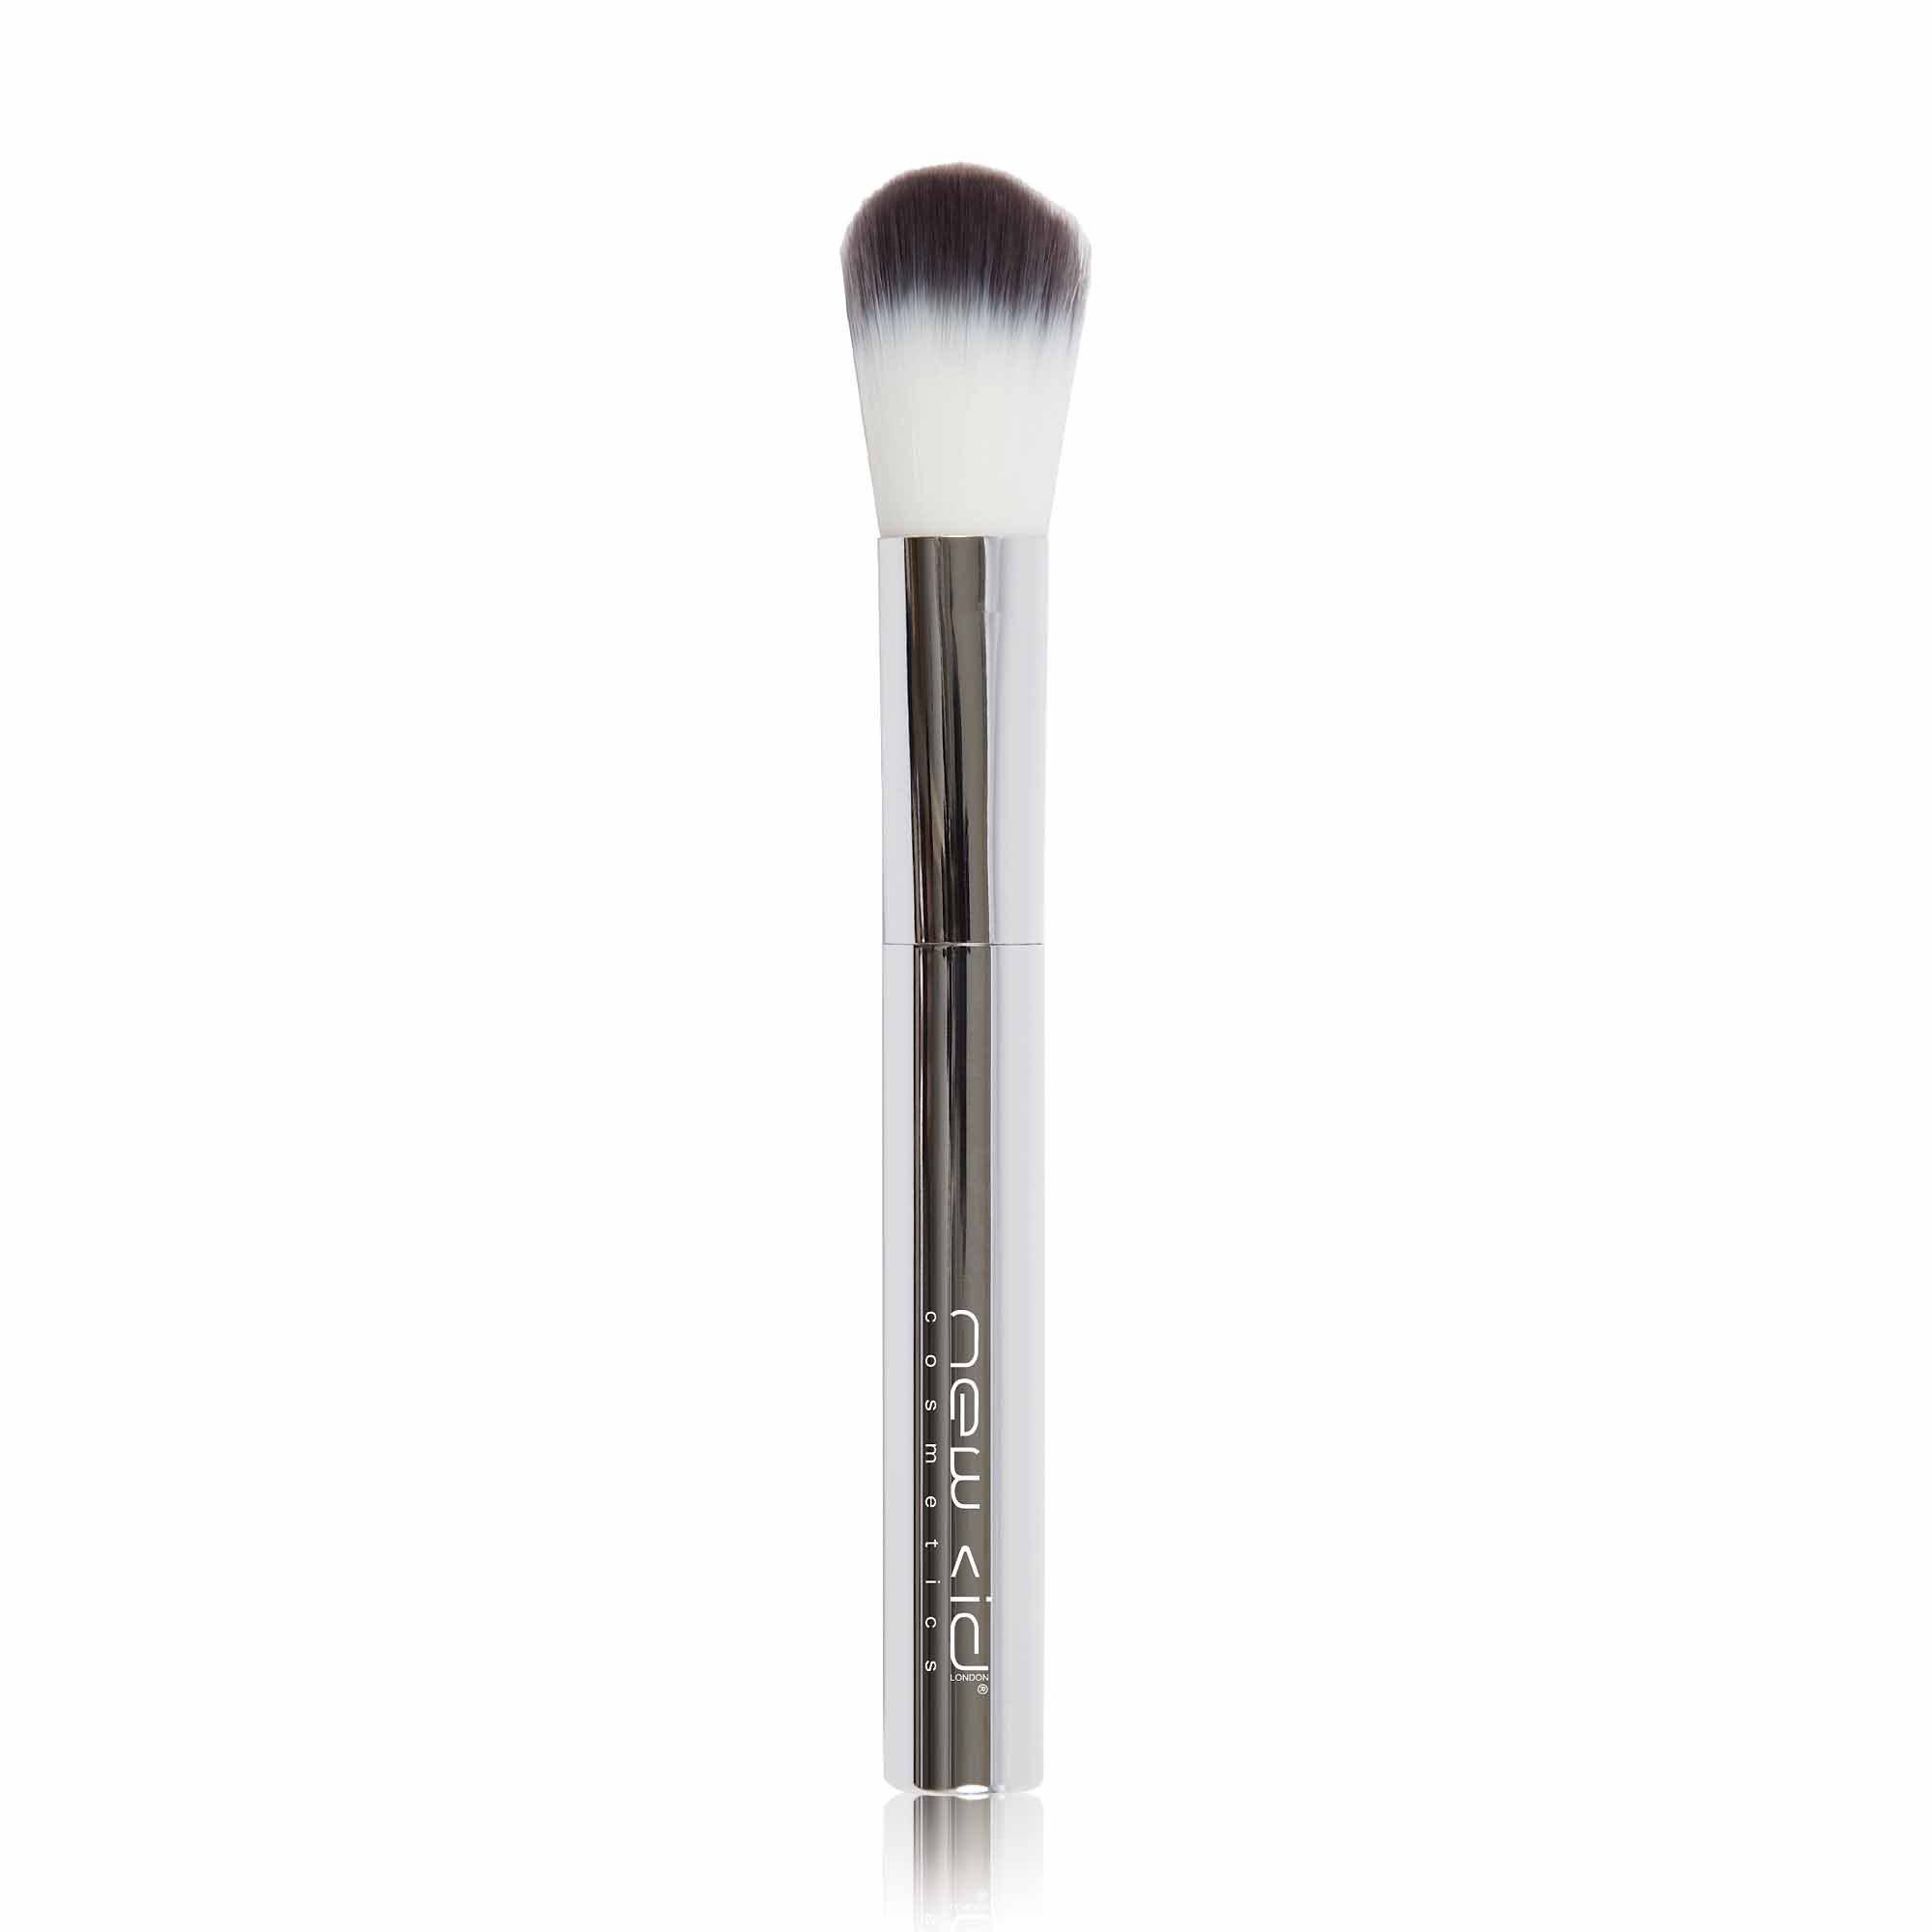 New Cid Cosmetics i-blush brush pennello dalle setole morbide con custodia